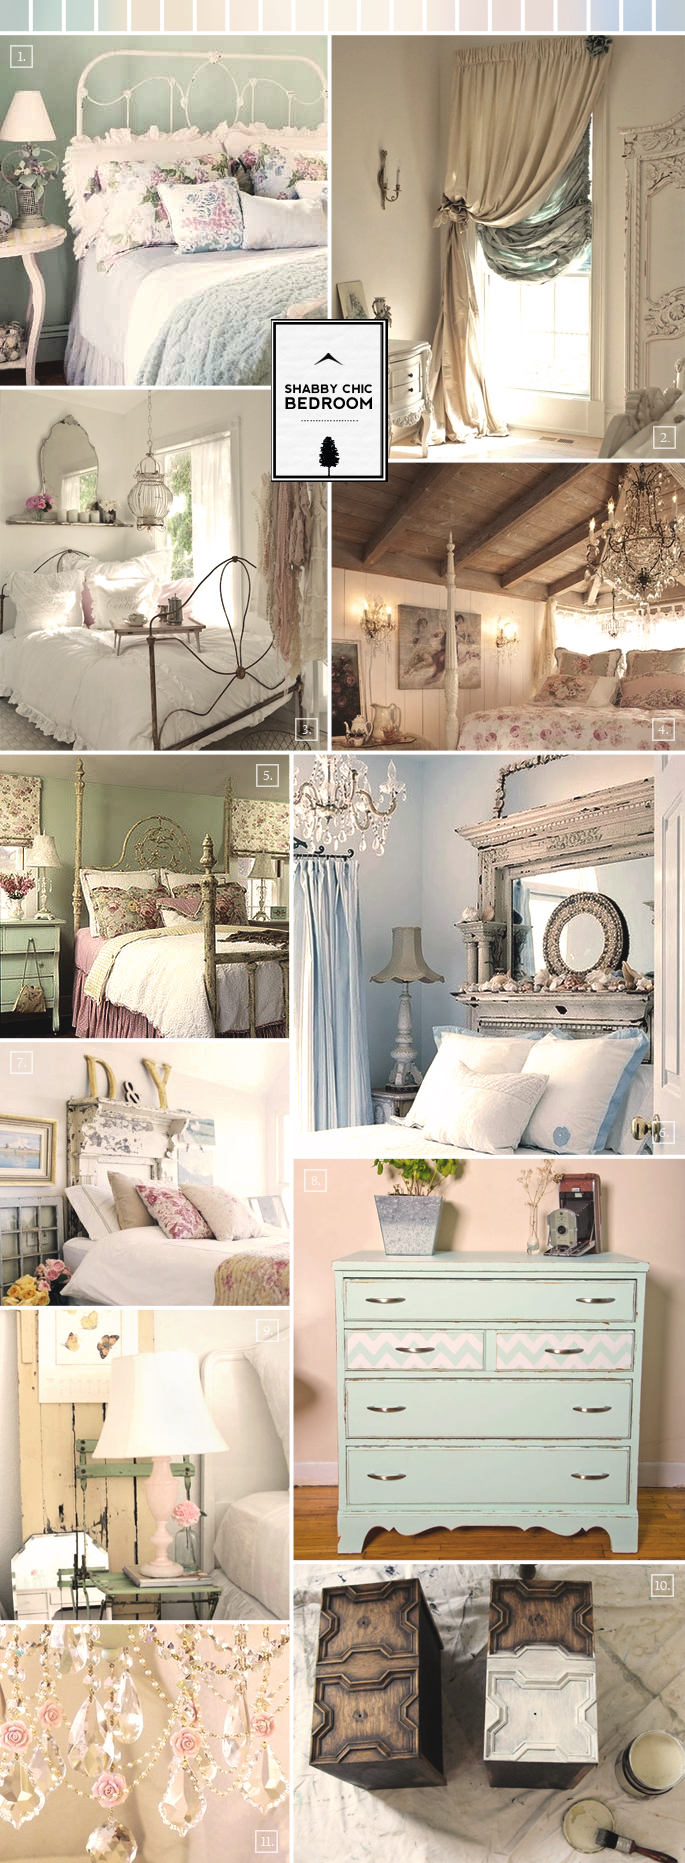 design ideas regard shabby chic shabby chic living room design ideas interior design inspiration awesome shabby chic bedroom